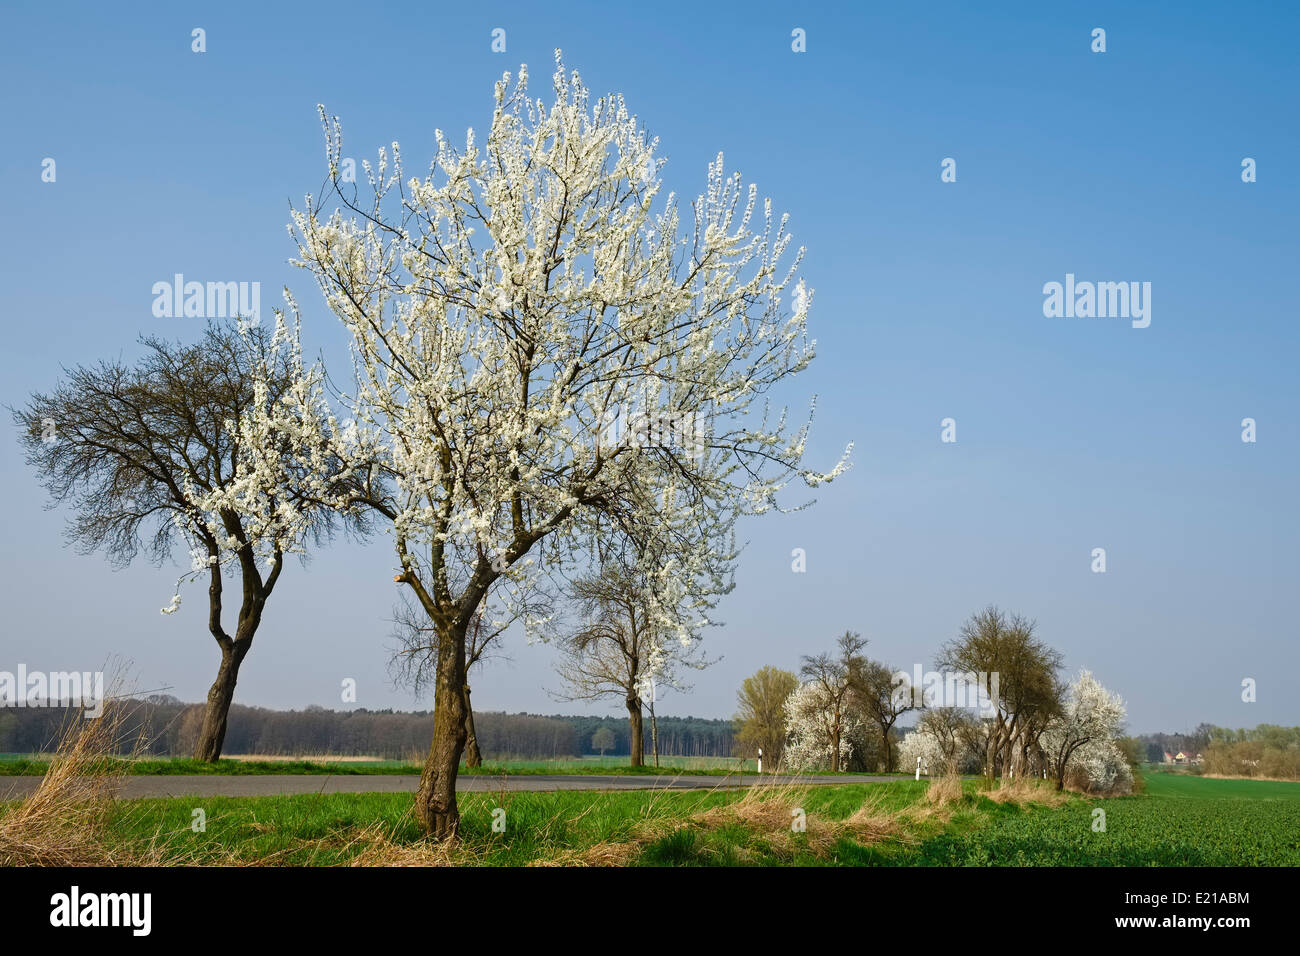 Blooming trees at country road, Brandenburg Germany - Stock Image